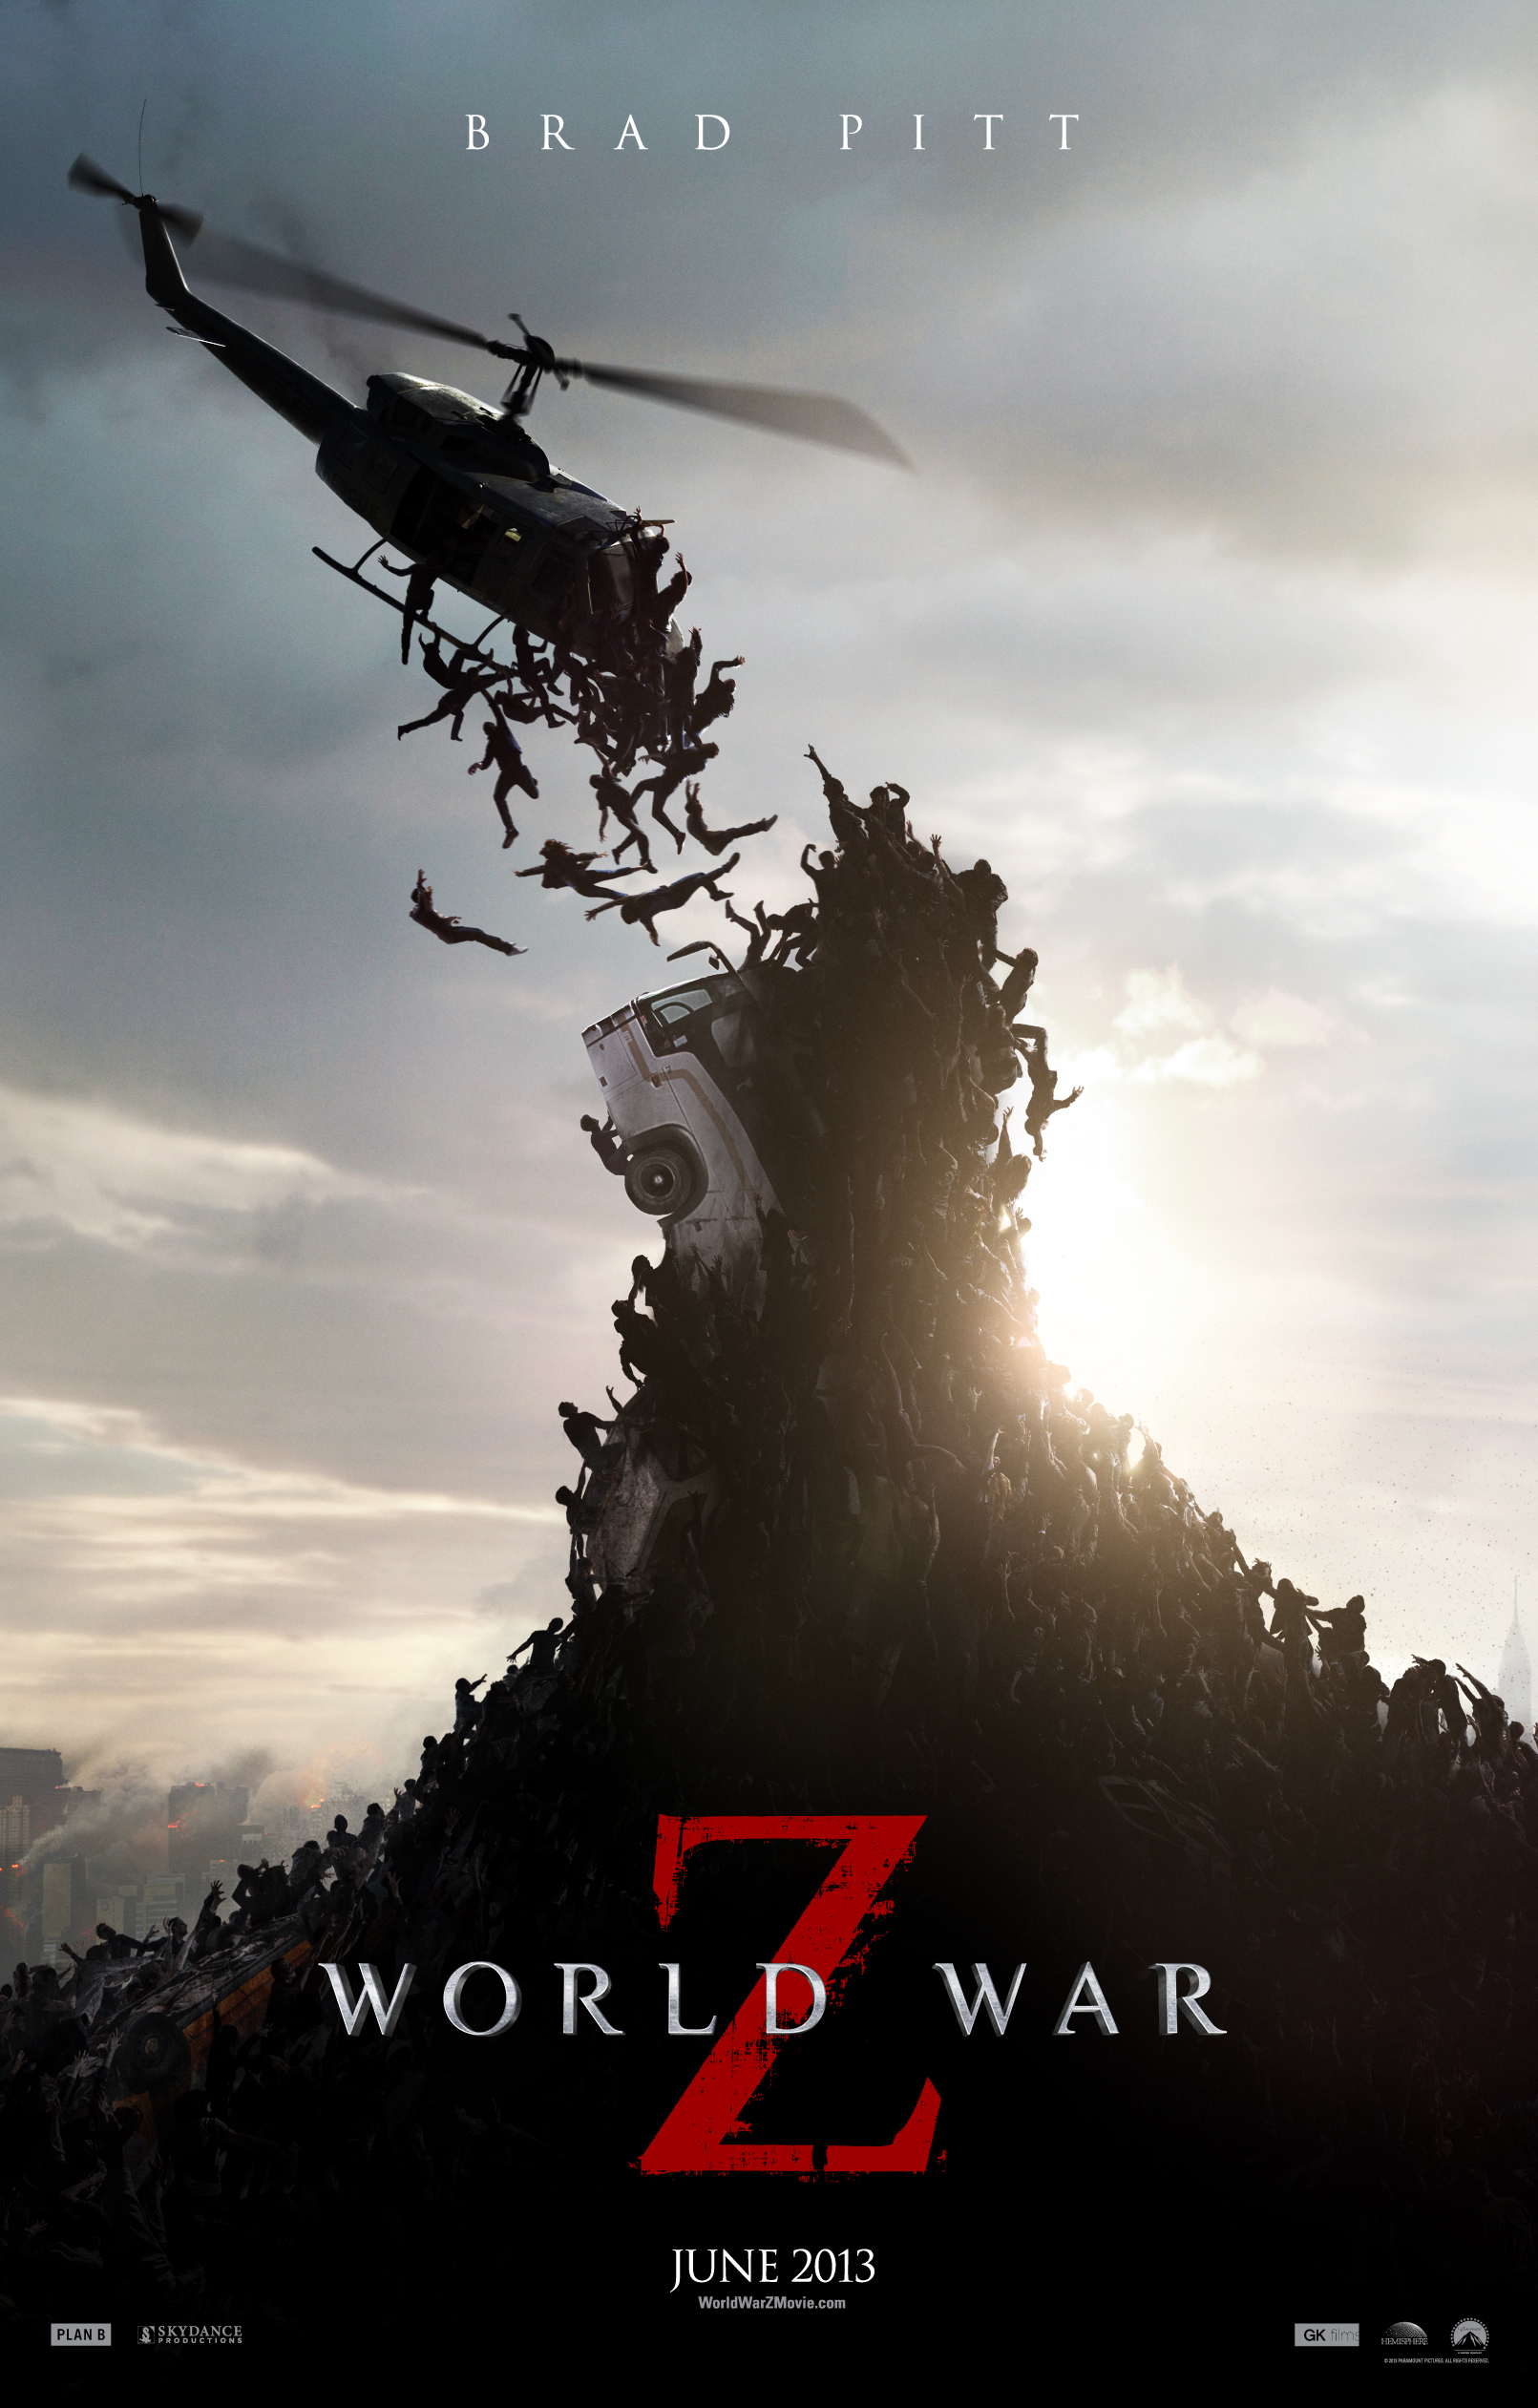 Movie Trailer World War Z Gets New Trailer Poster